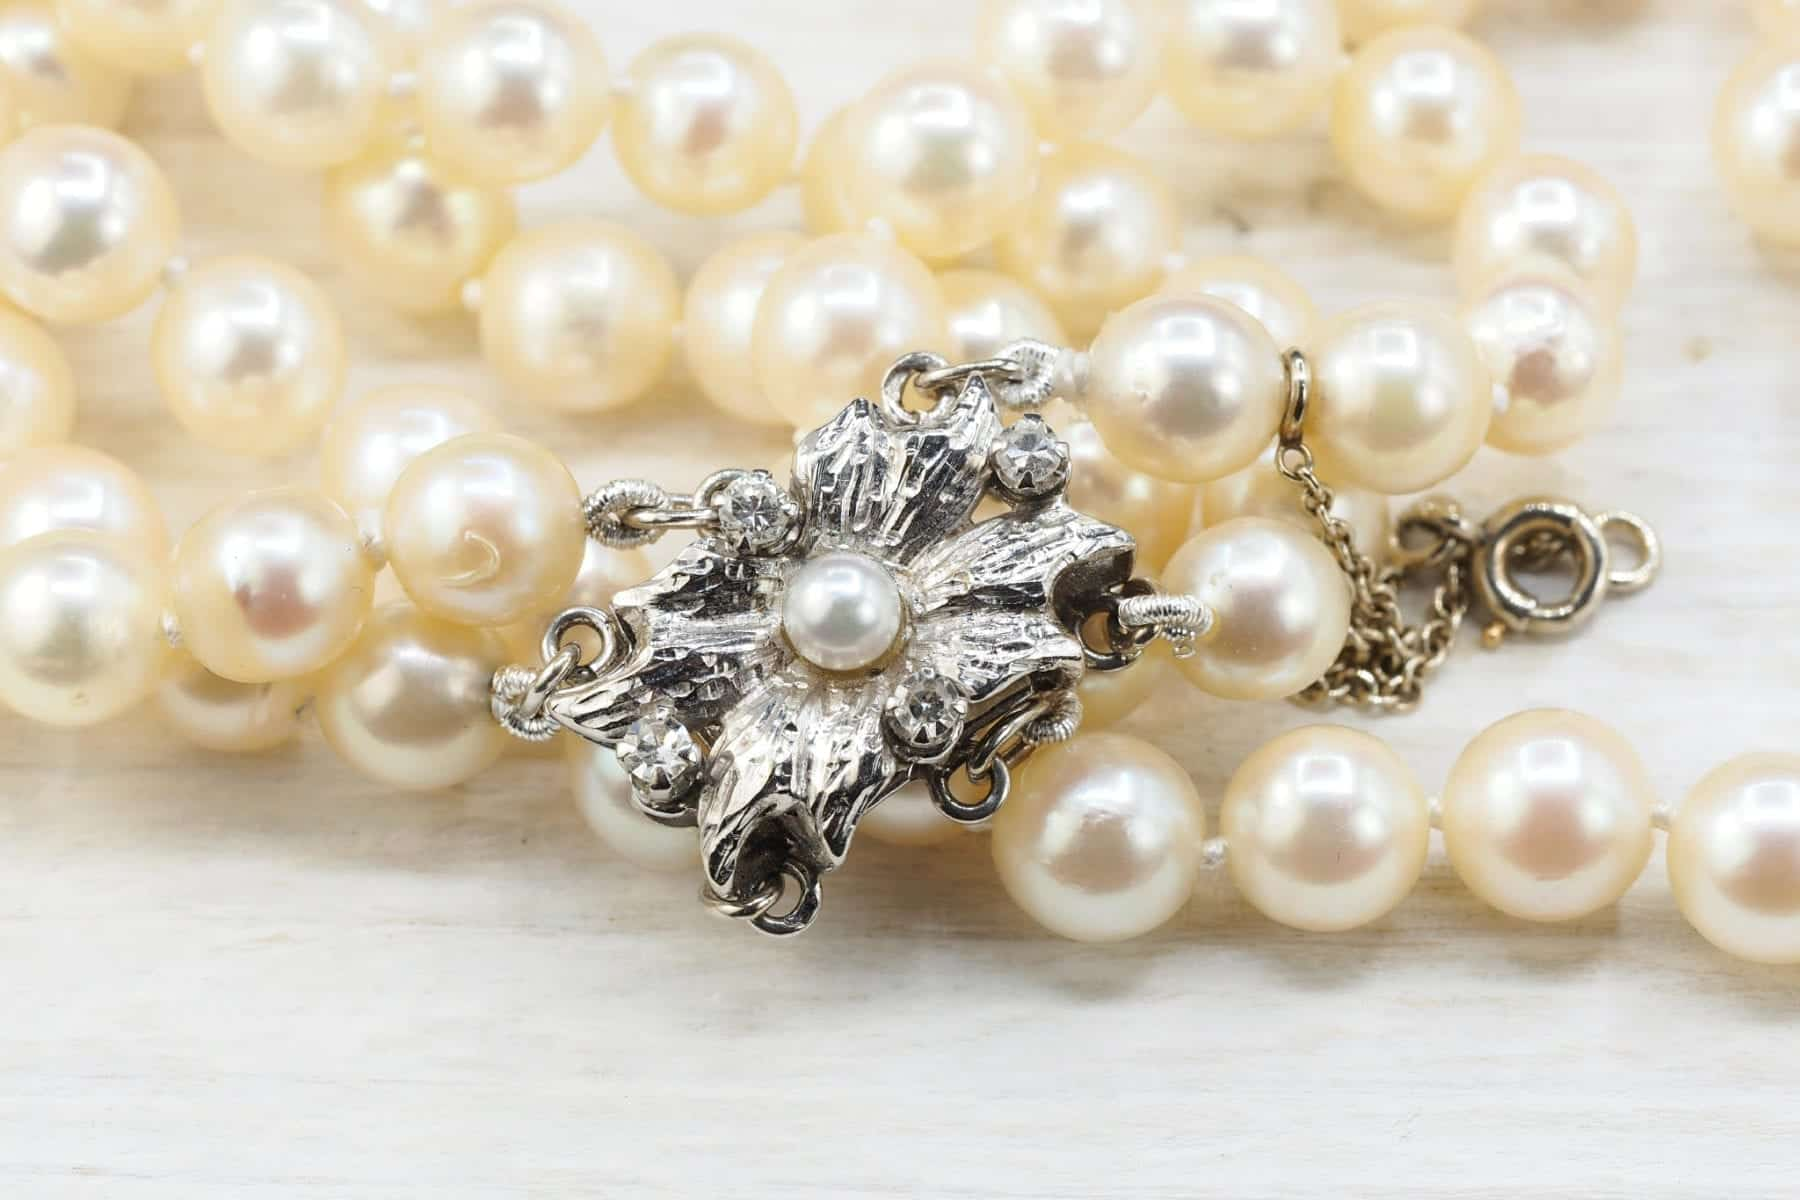 18k white gold and pearls necklace